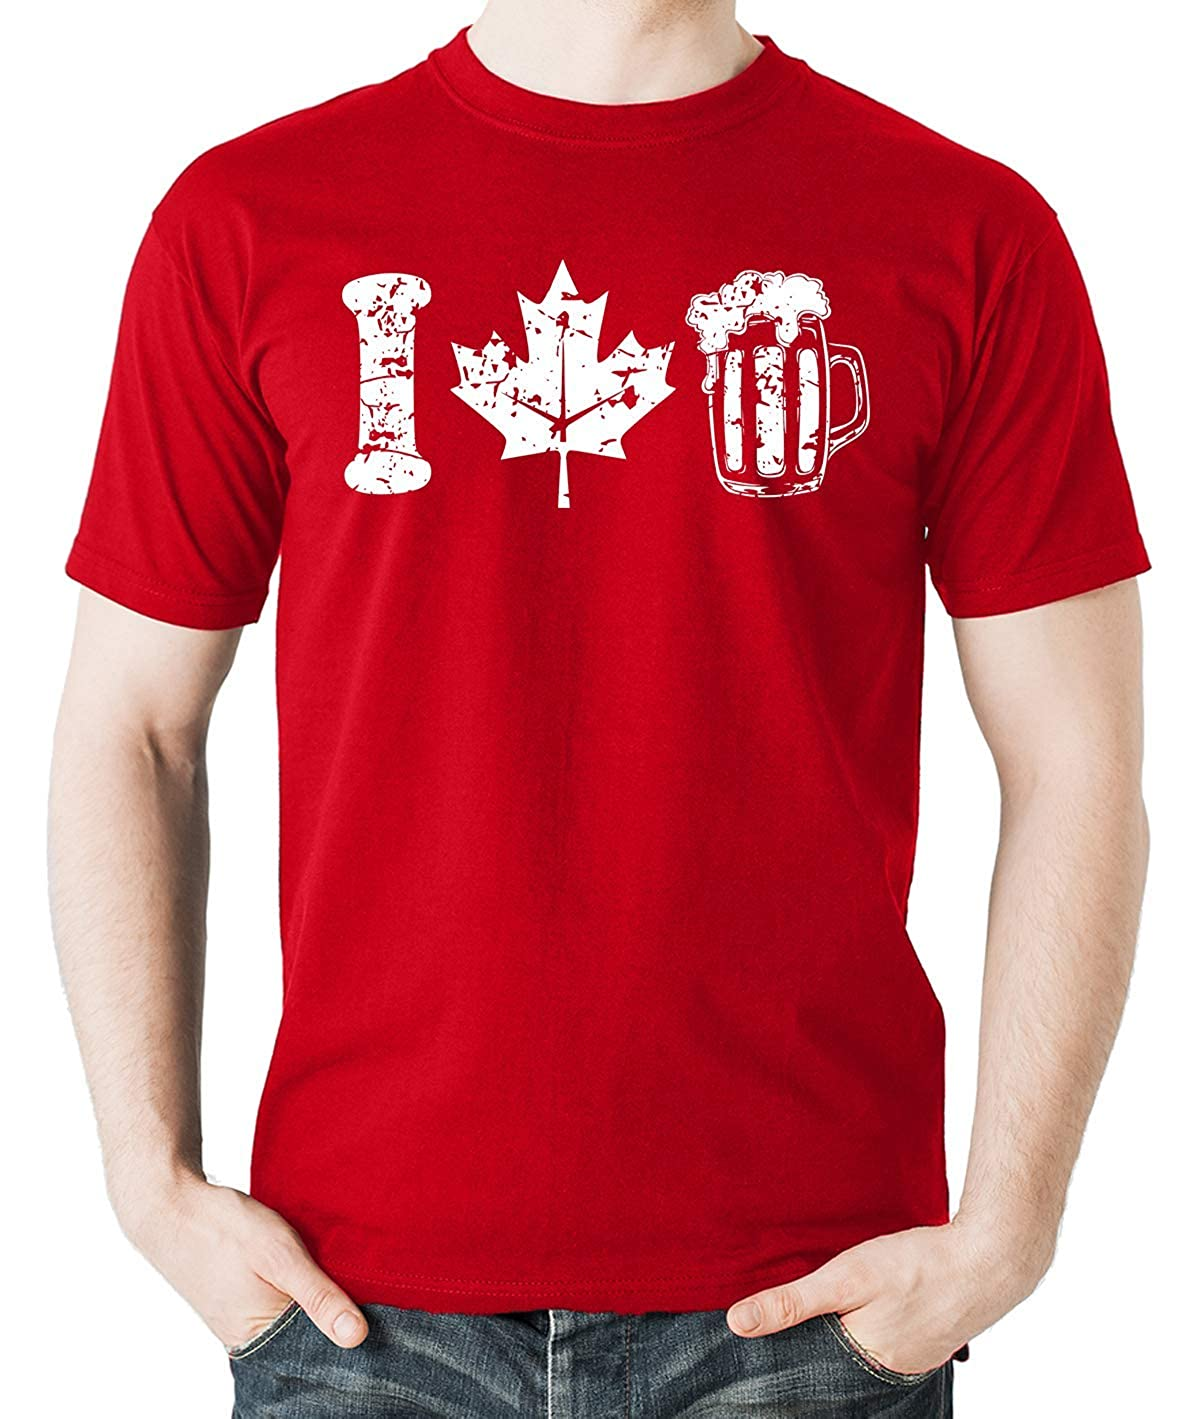 Witty Fashions I Love Beer, Funny Shirt, Canada Day, Beer Lovers Drinking Men's Shirt